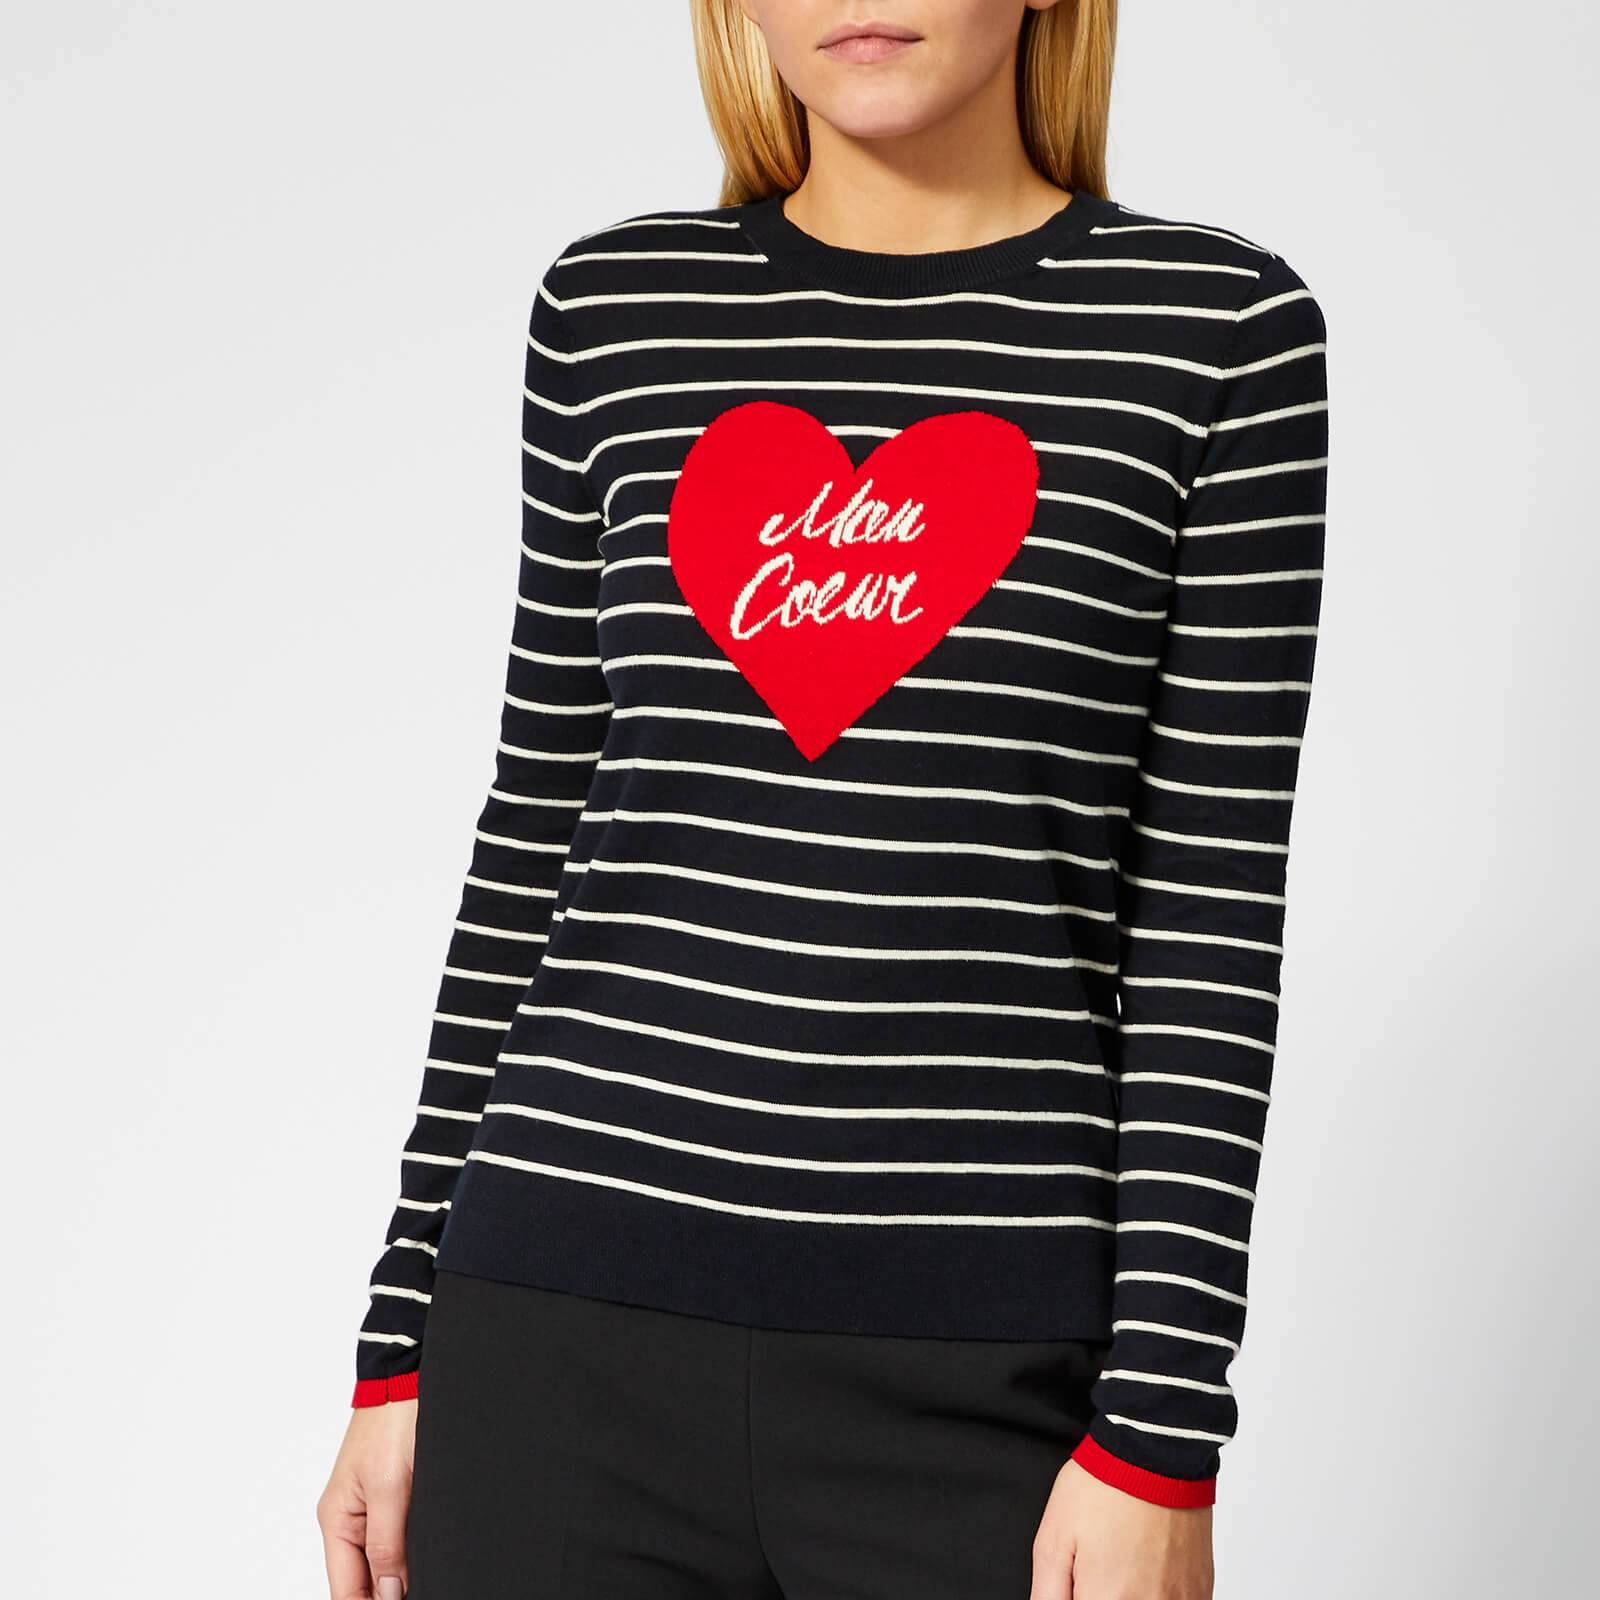 Whistles Women's Mon Coeur Heart Stripe Knit Jumper - Multicolour - UK 10 - Multi